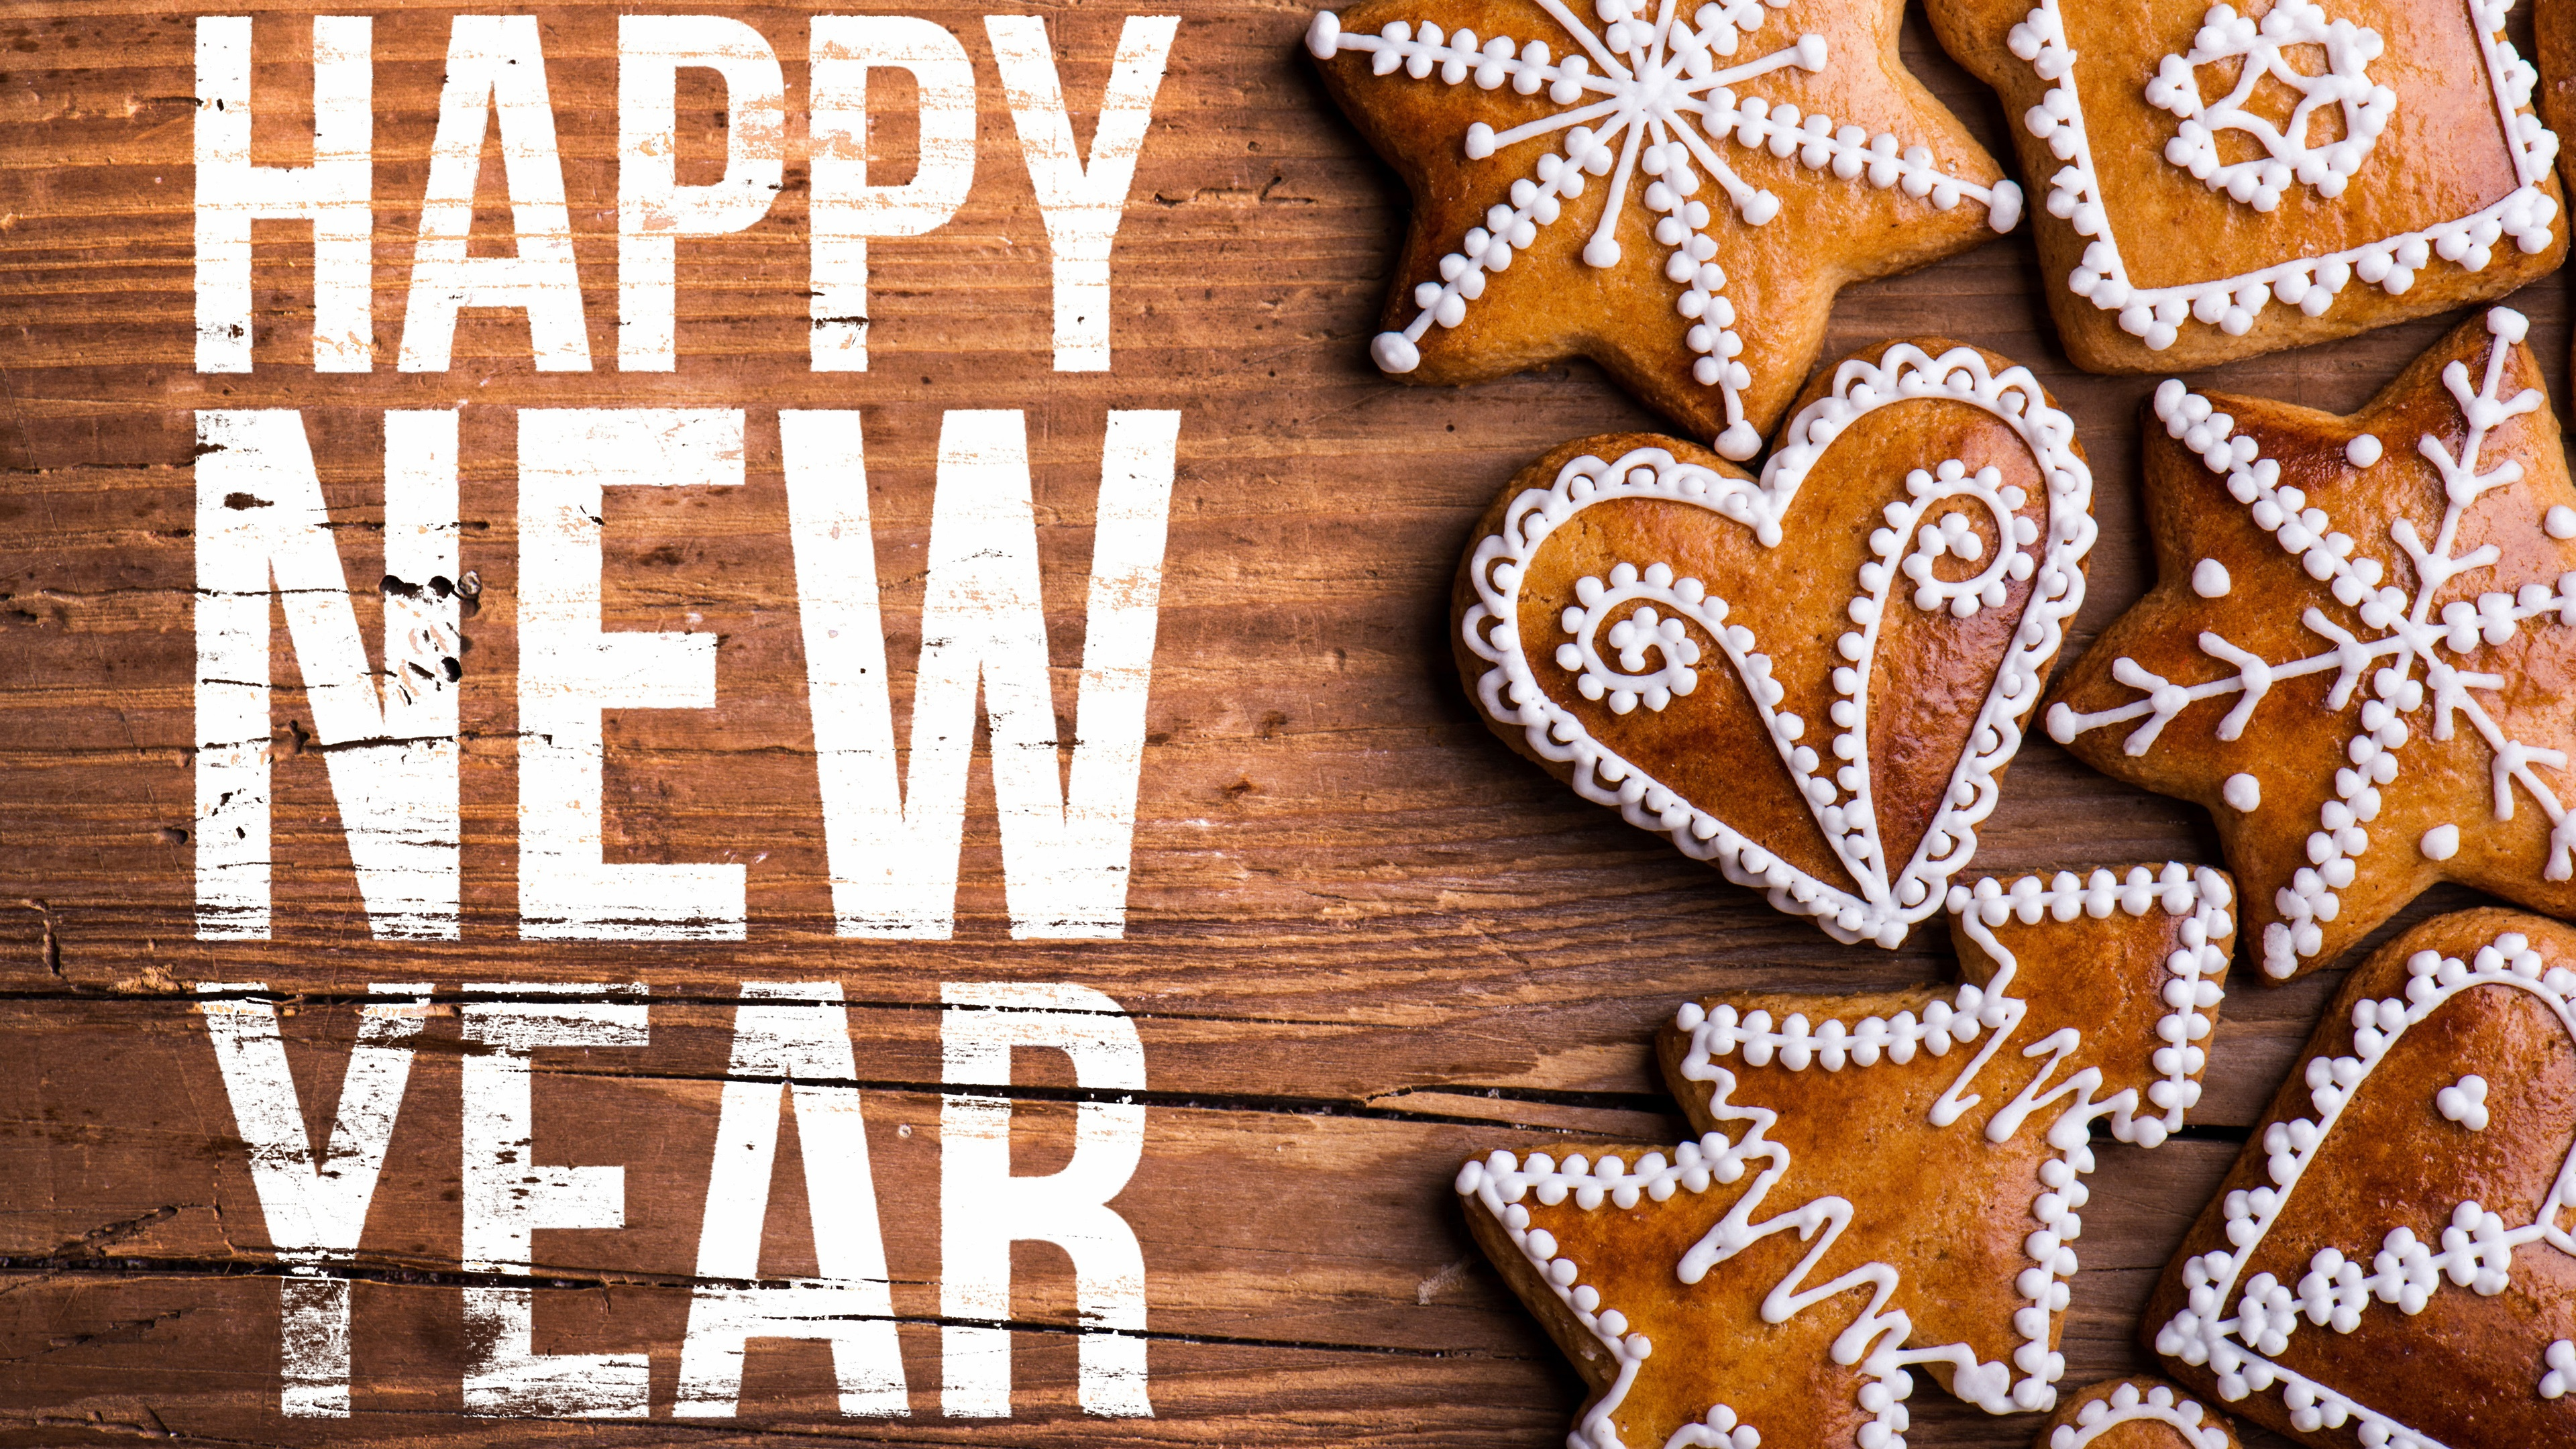 Happy New Year Cookies Wood Board 1080x1920 Iphone 8 7 6